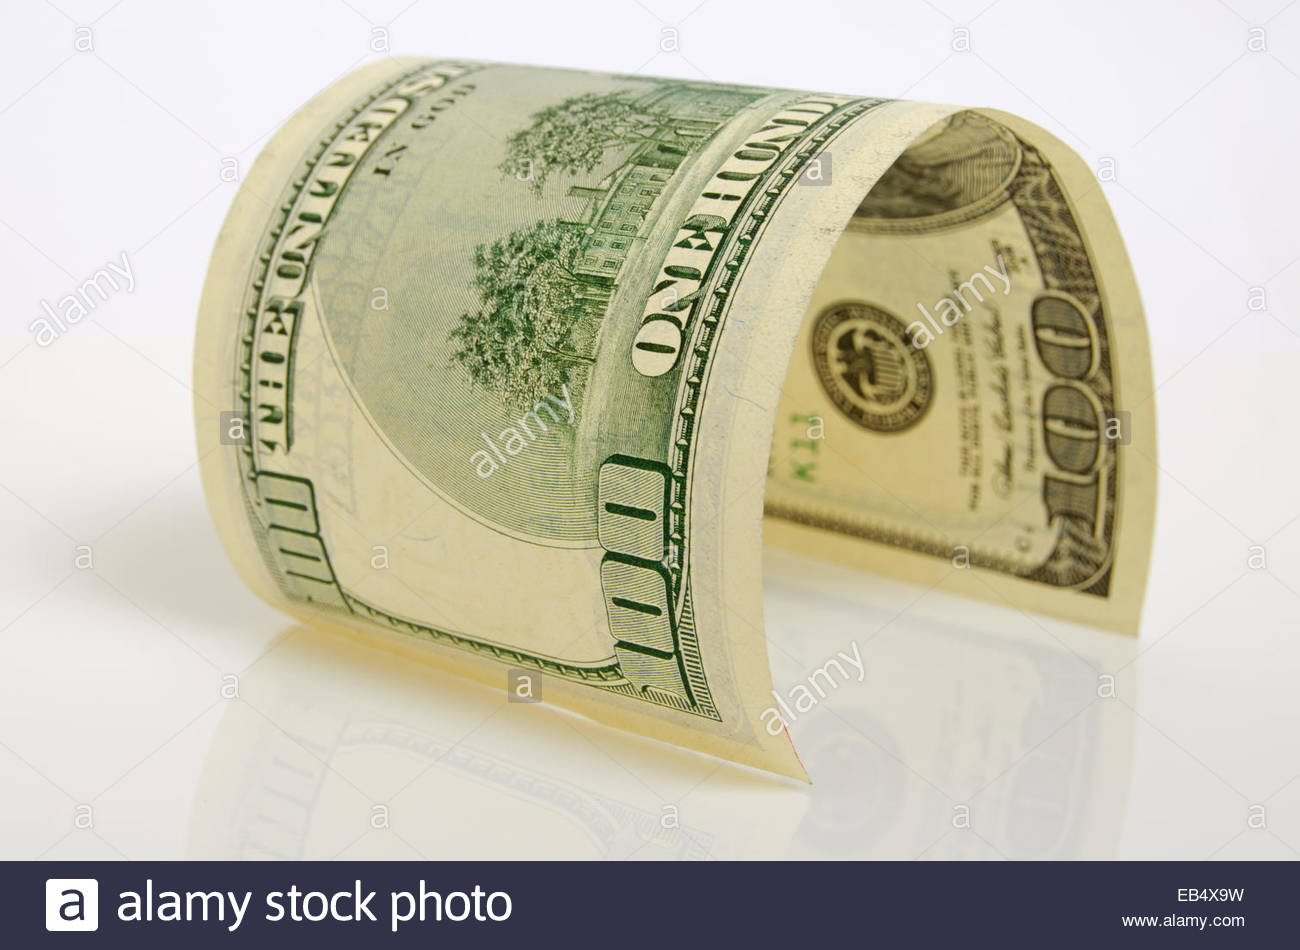 Curved hundred-dollar bill close up on a light plane. - Stock Image